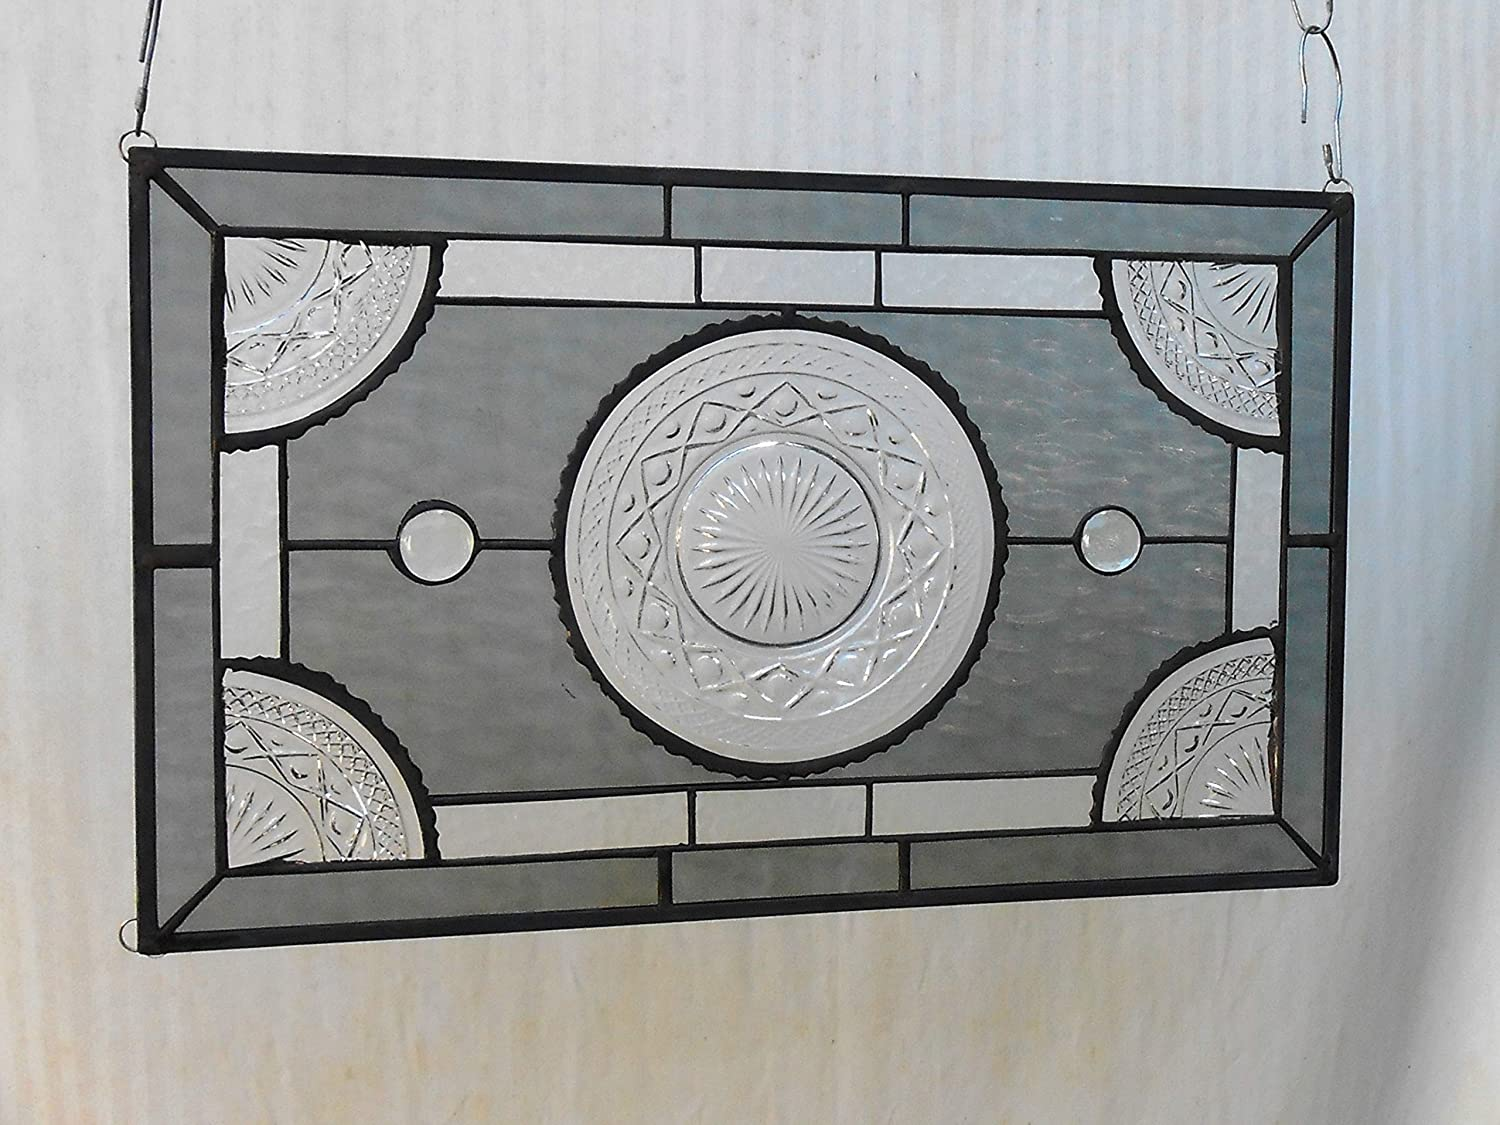 OOAK Recycled Depression Glass, Imperial Cape Cod Depression Glass Stained Glass Window Panel, Antique Transom Window, Vintage Glass Valance